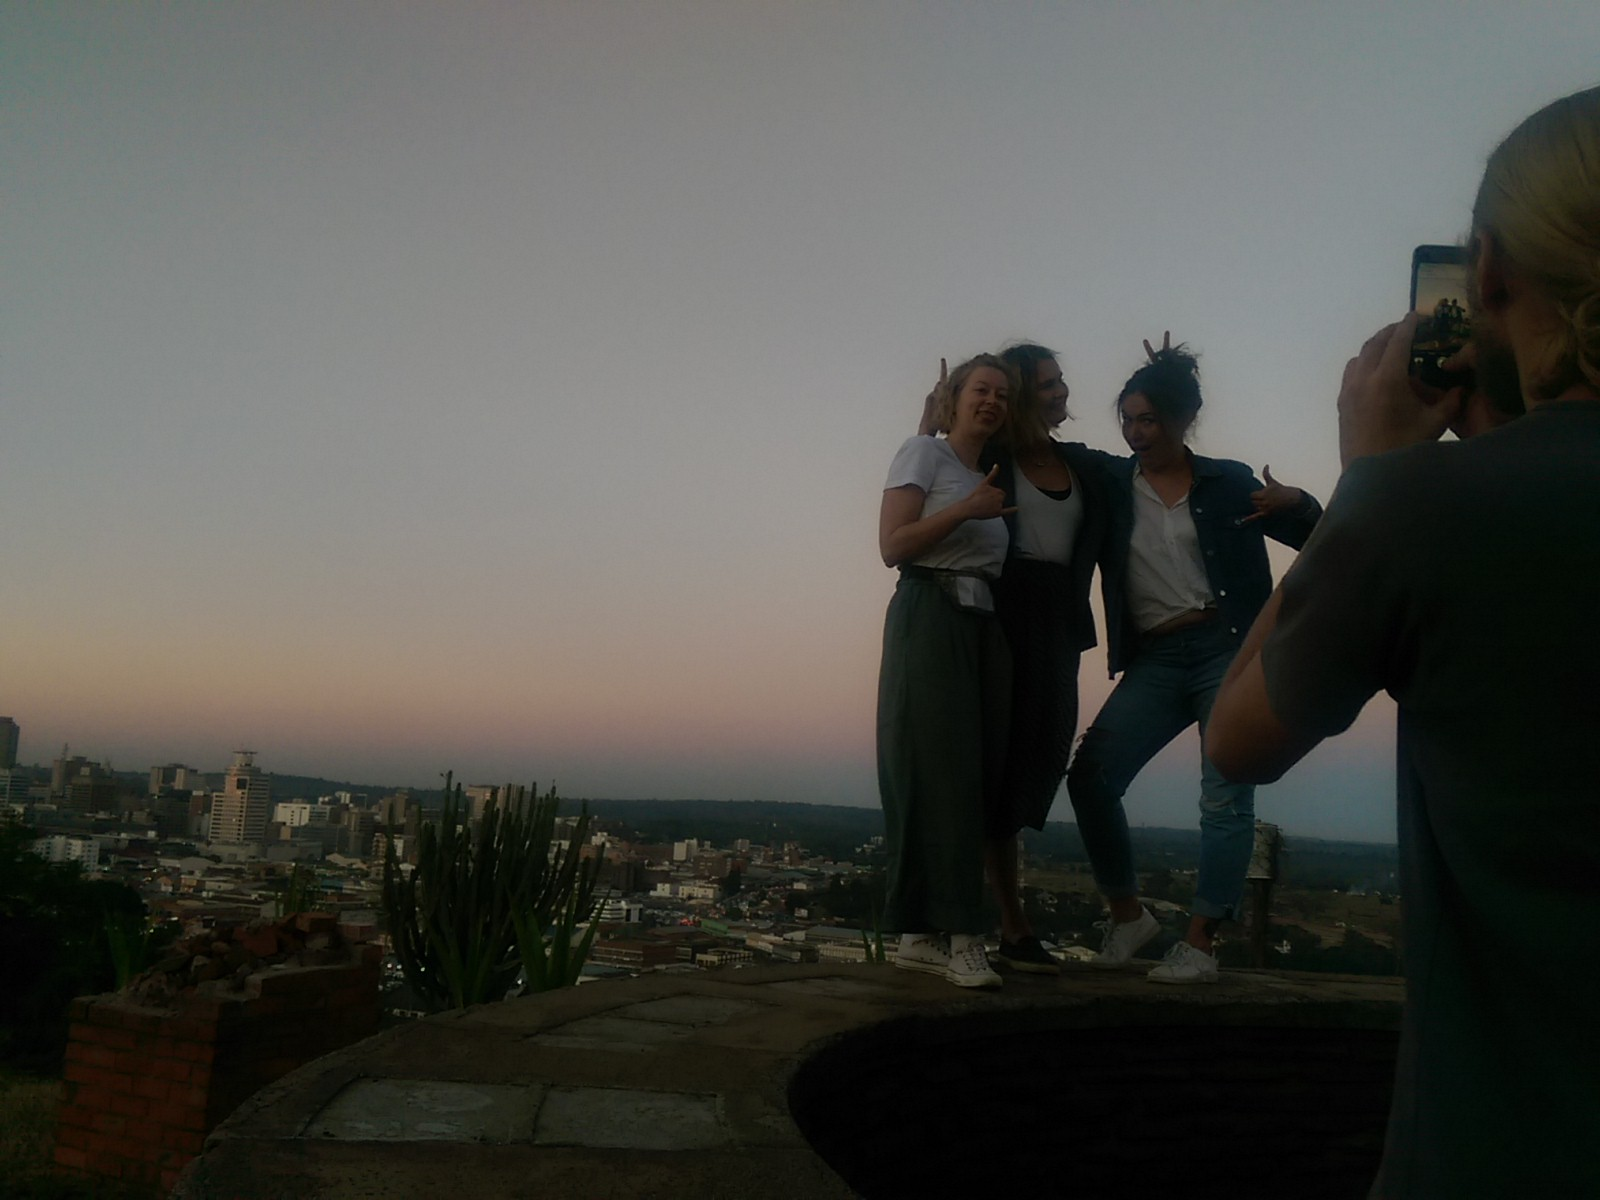 Three women pose on a wall with a dusk cityscape in the background while a man in the foreground takes a photo